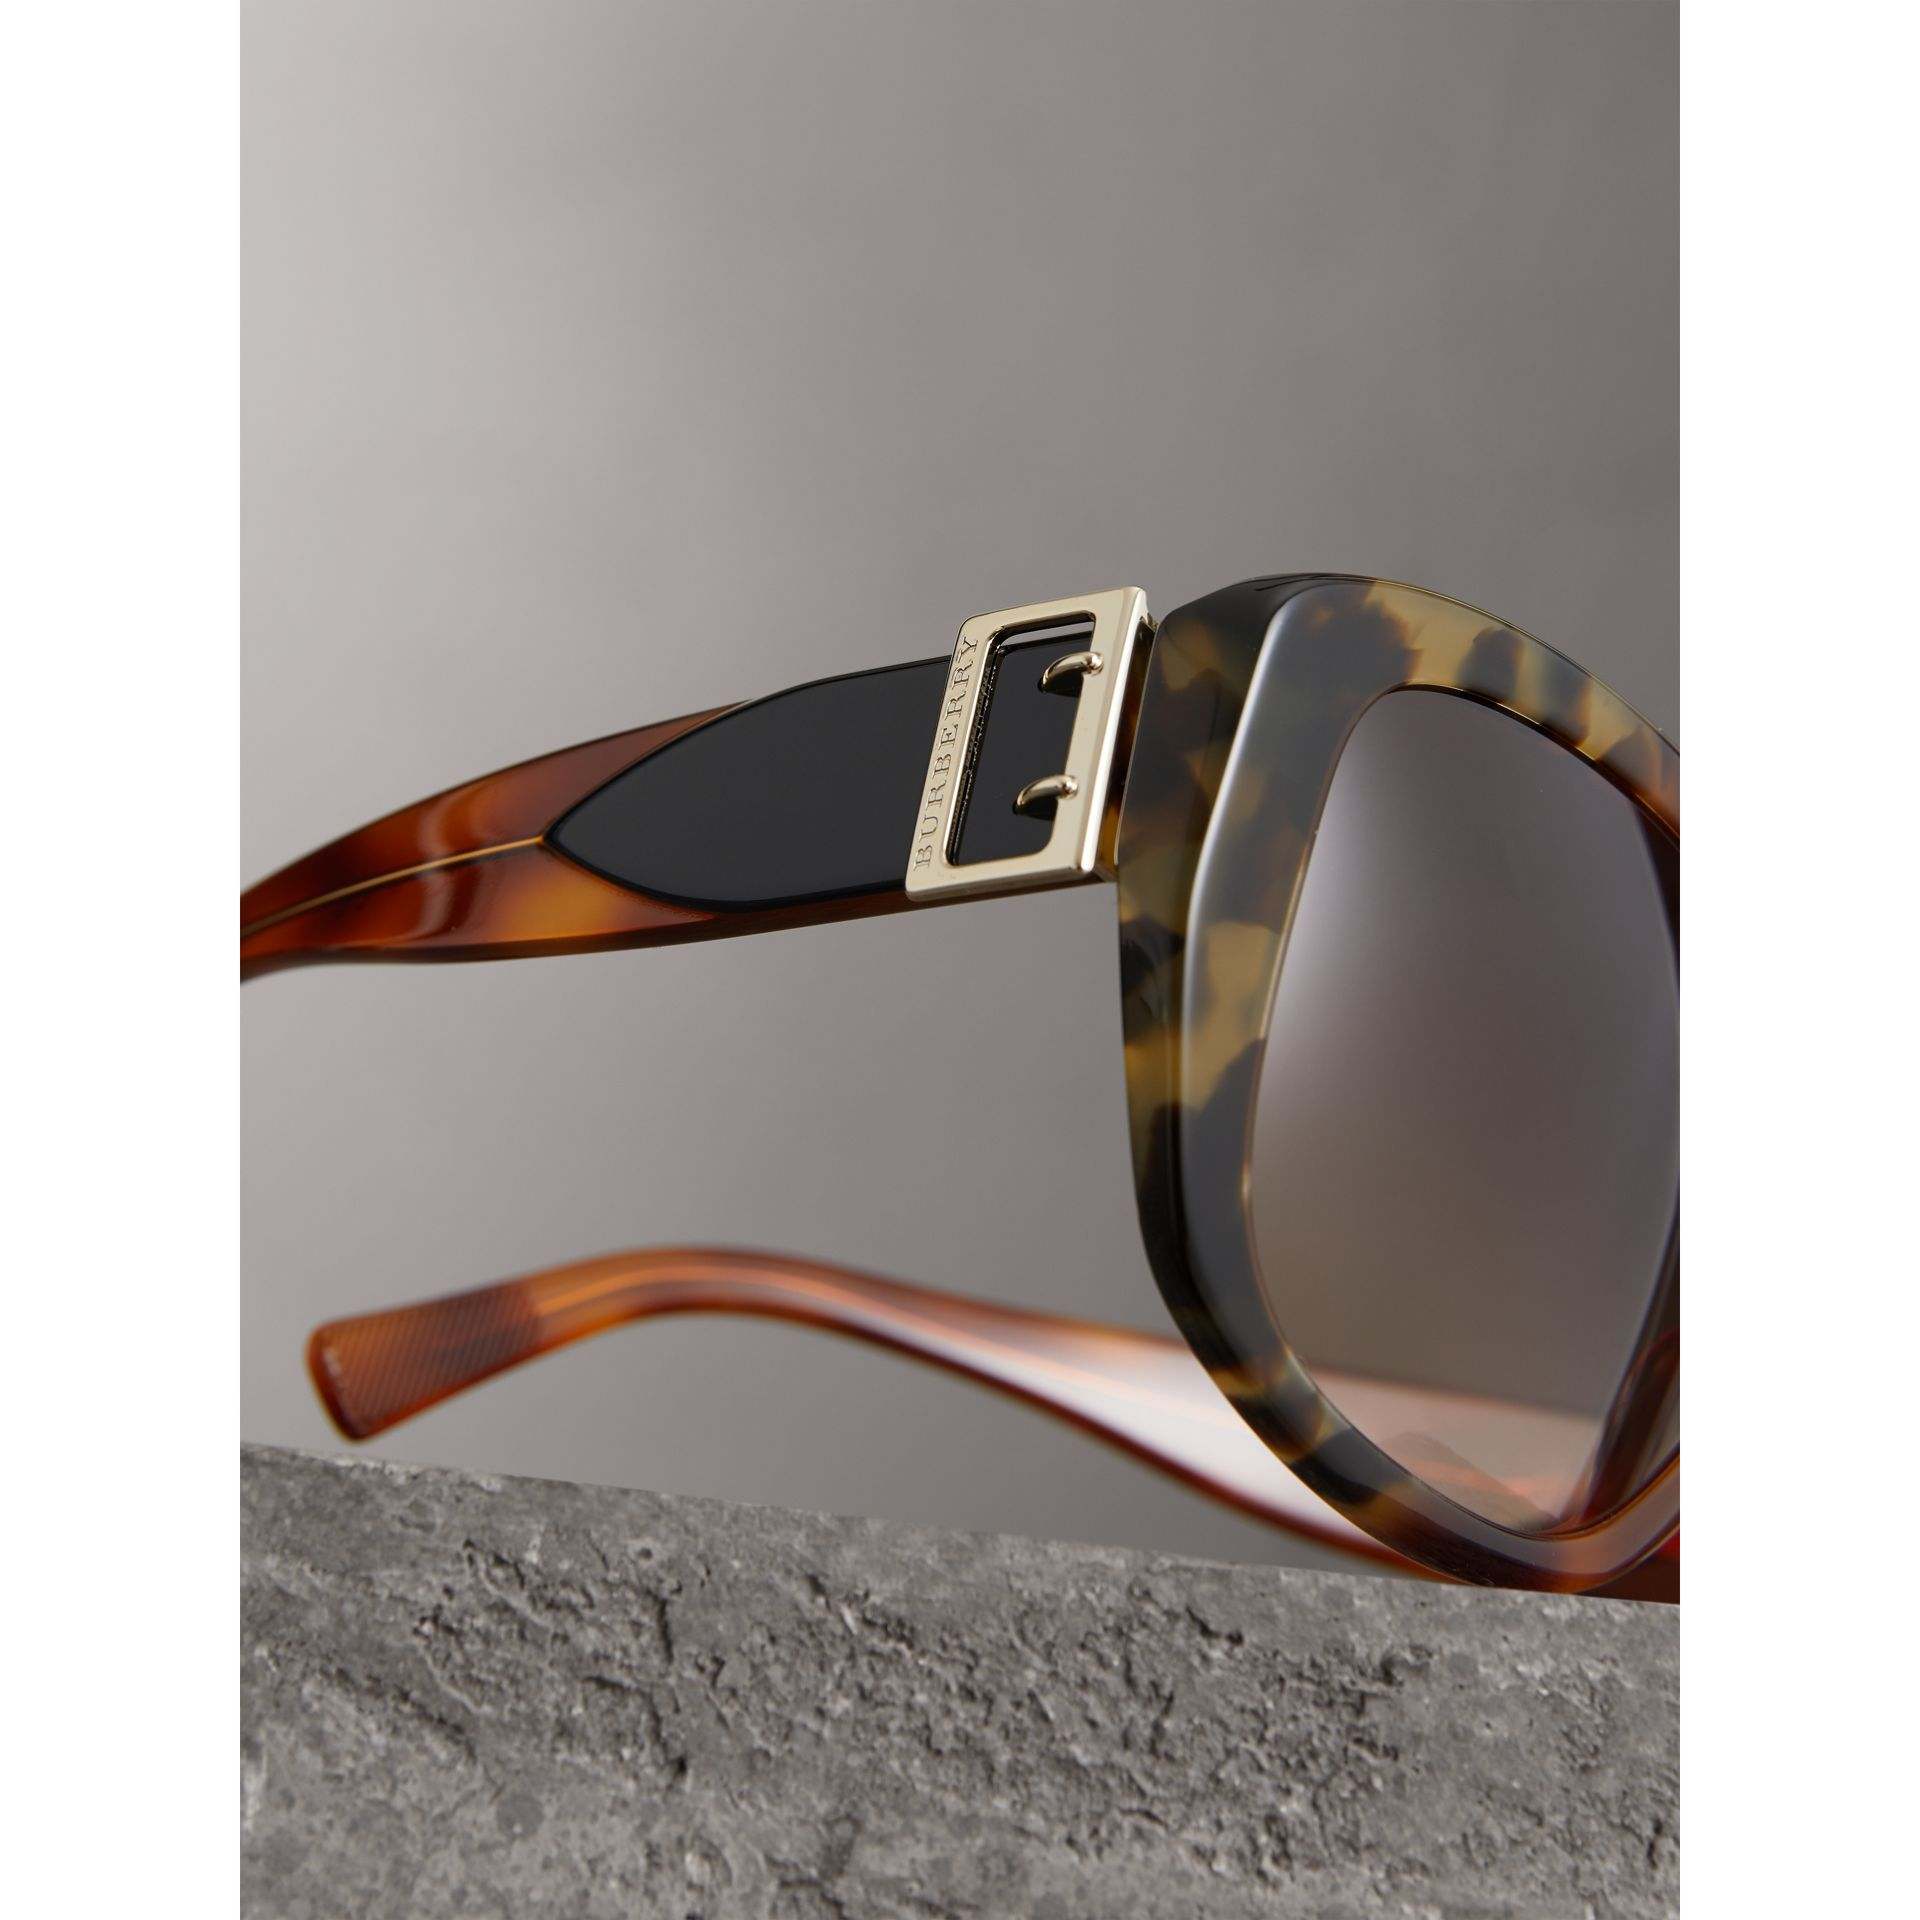 Buckle Detail Oversize Square Frame Sunglasses in Dark Ochre - Women | Burberry Australia - gallery image 1